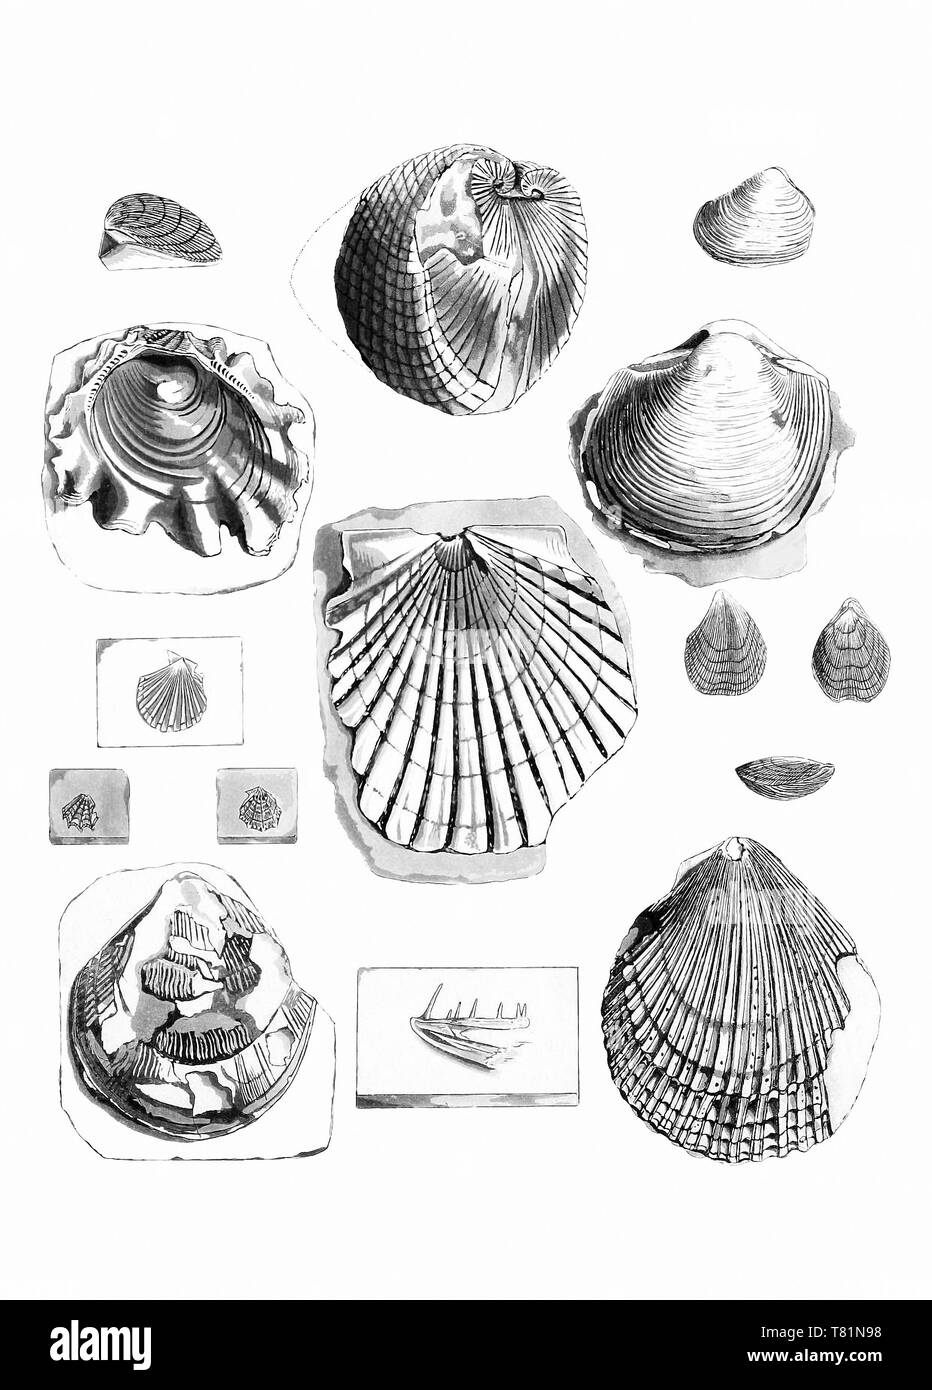 Fossil Bivalves and Brachiopods - Stock Image